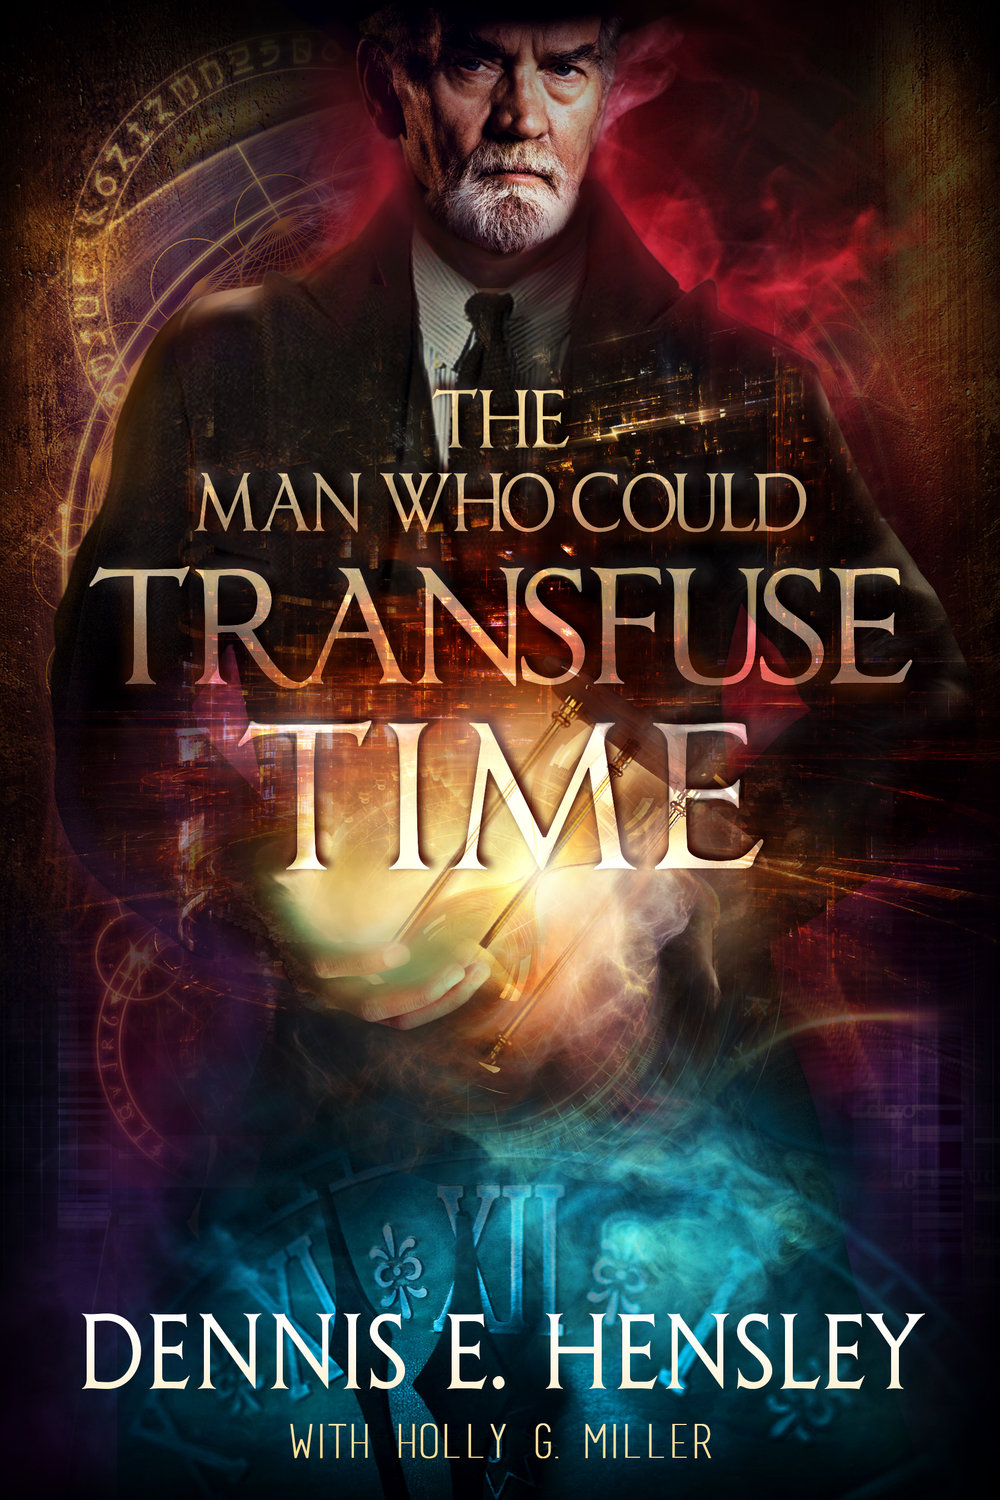 The Man Who Could Transfuse Time - Dennis E. Henley